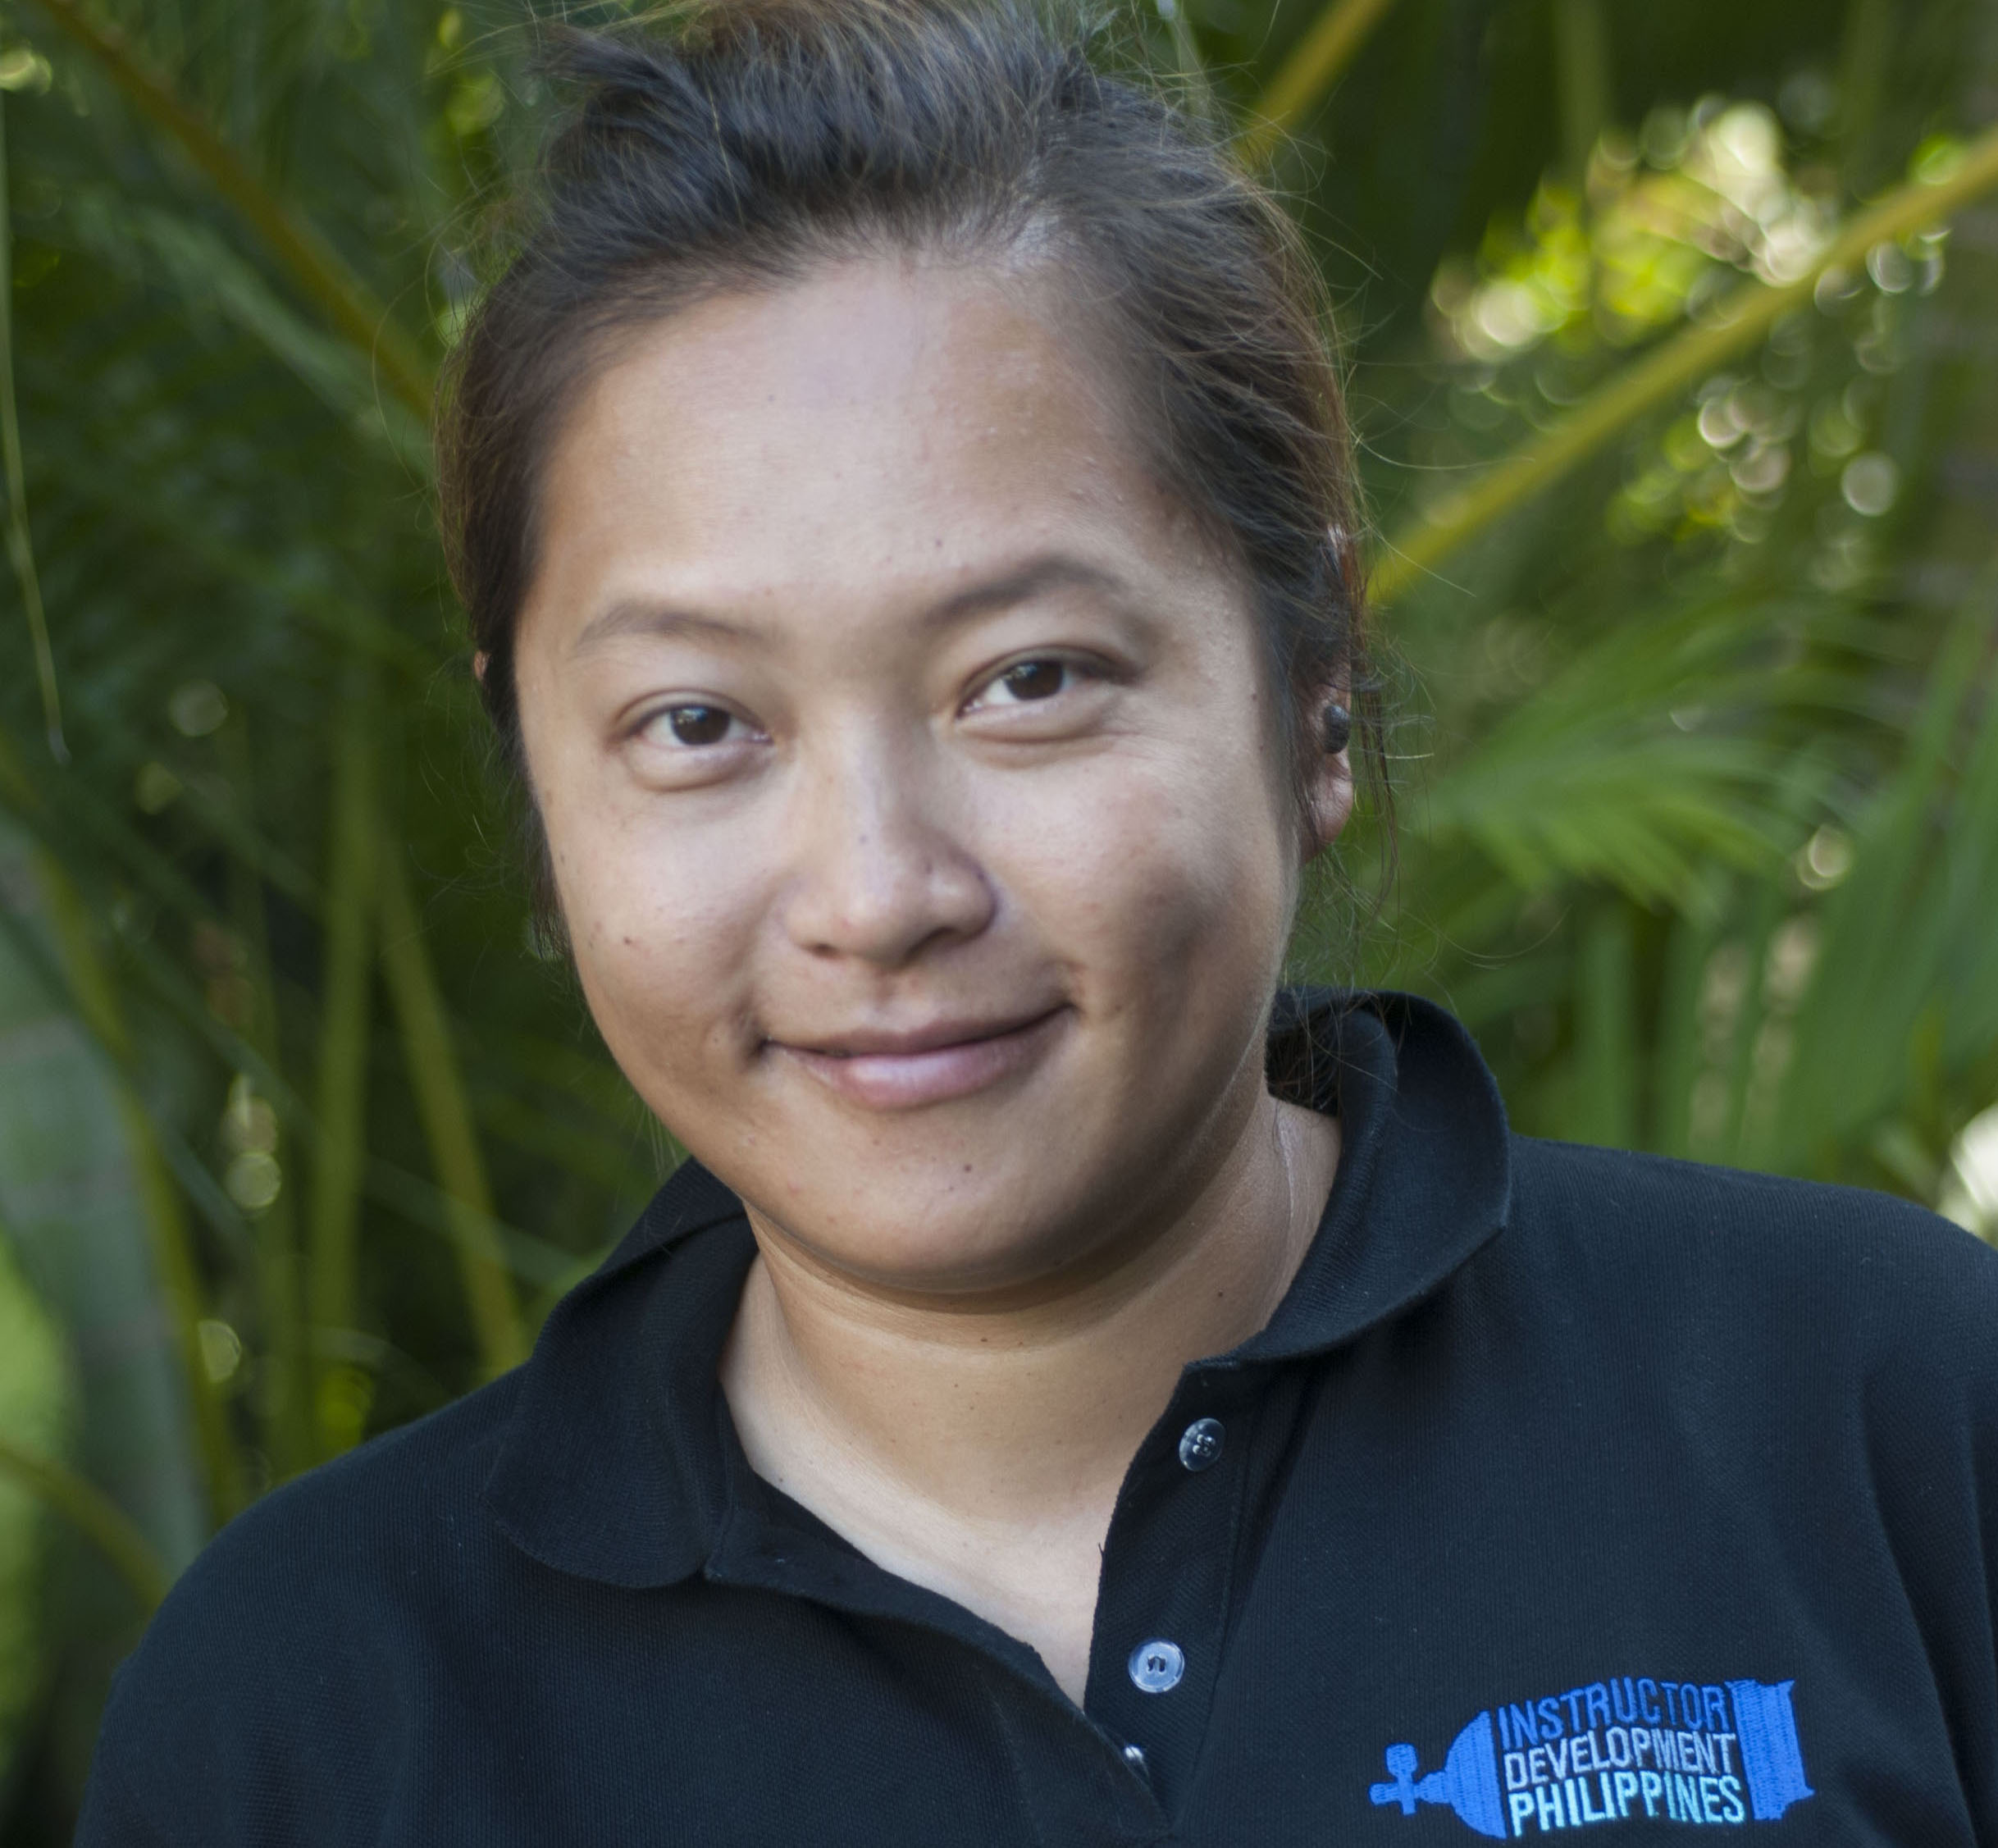 PADI Course Director, Atmosphere Resorts, Philippines